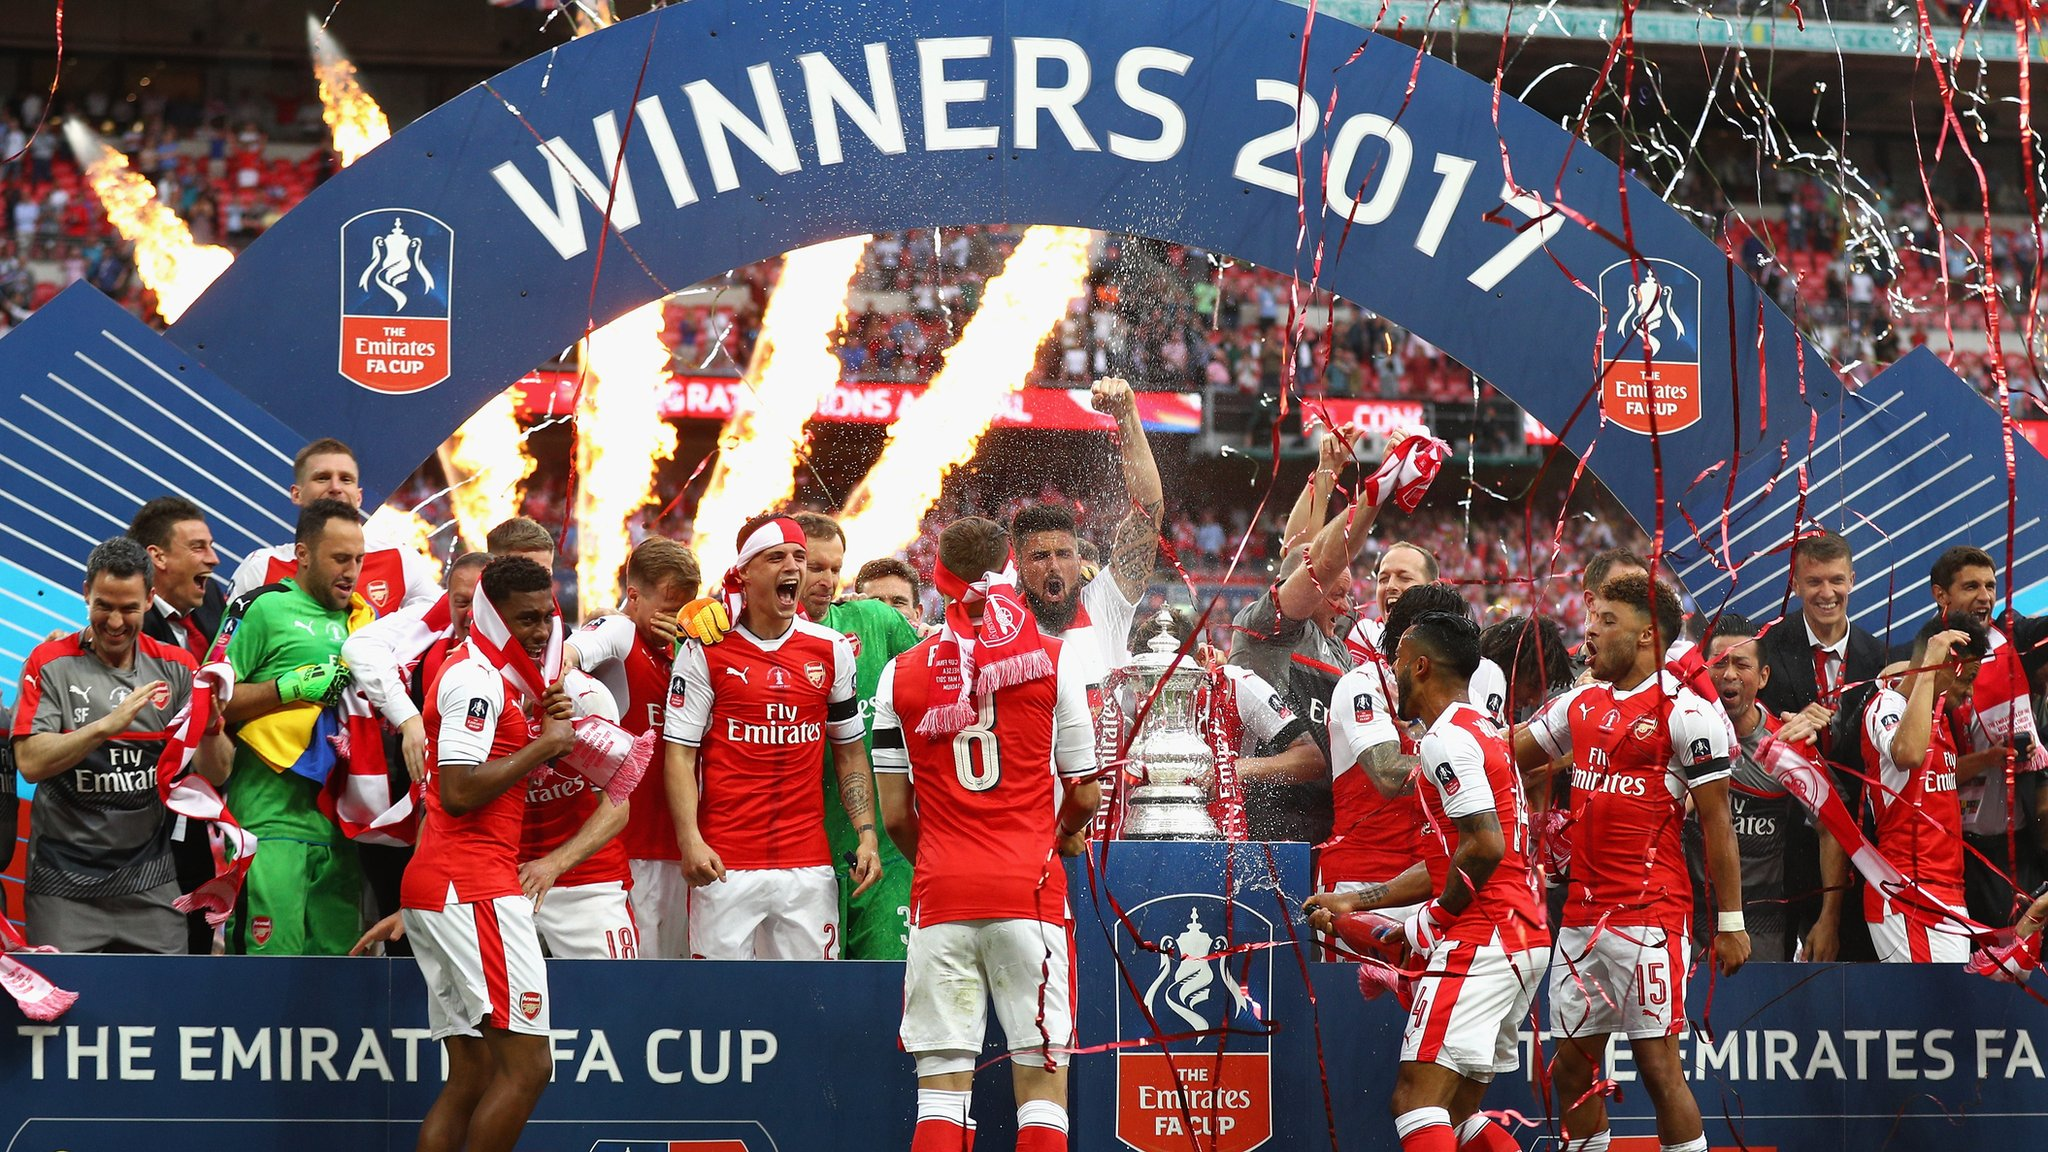 Arsenal win FA Cup for record 13th time